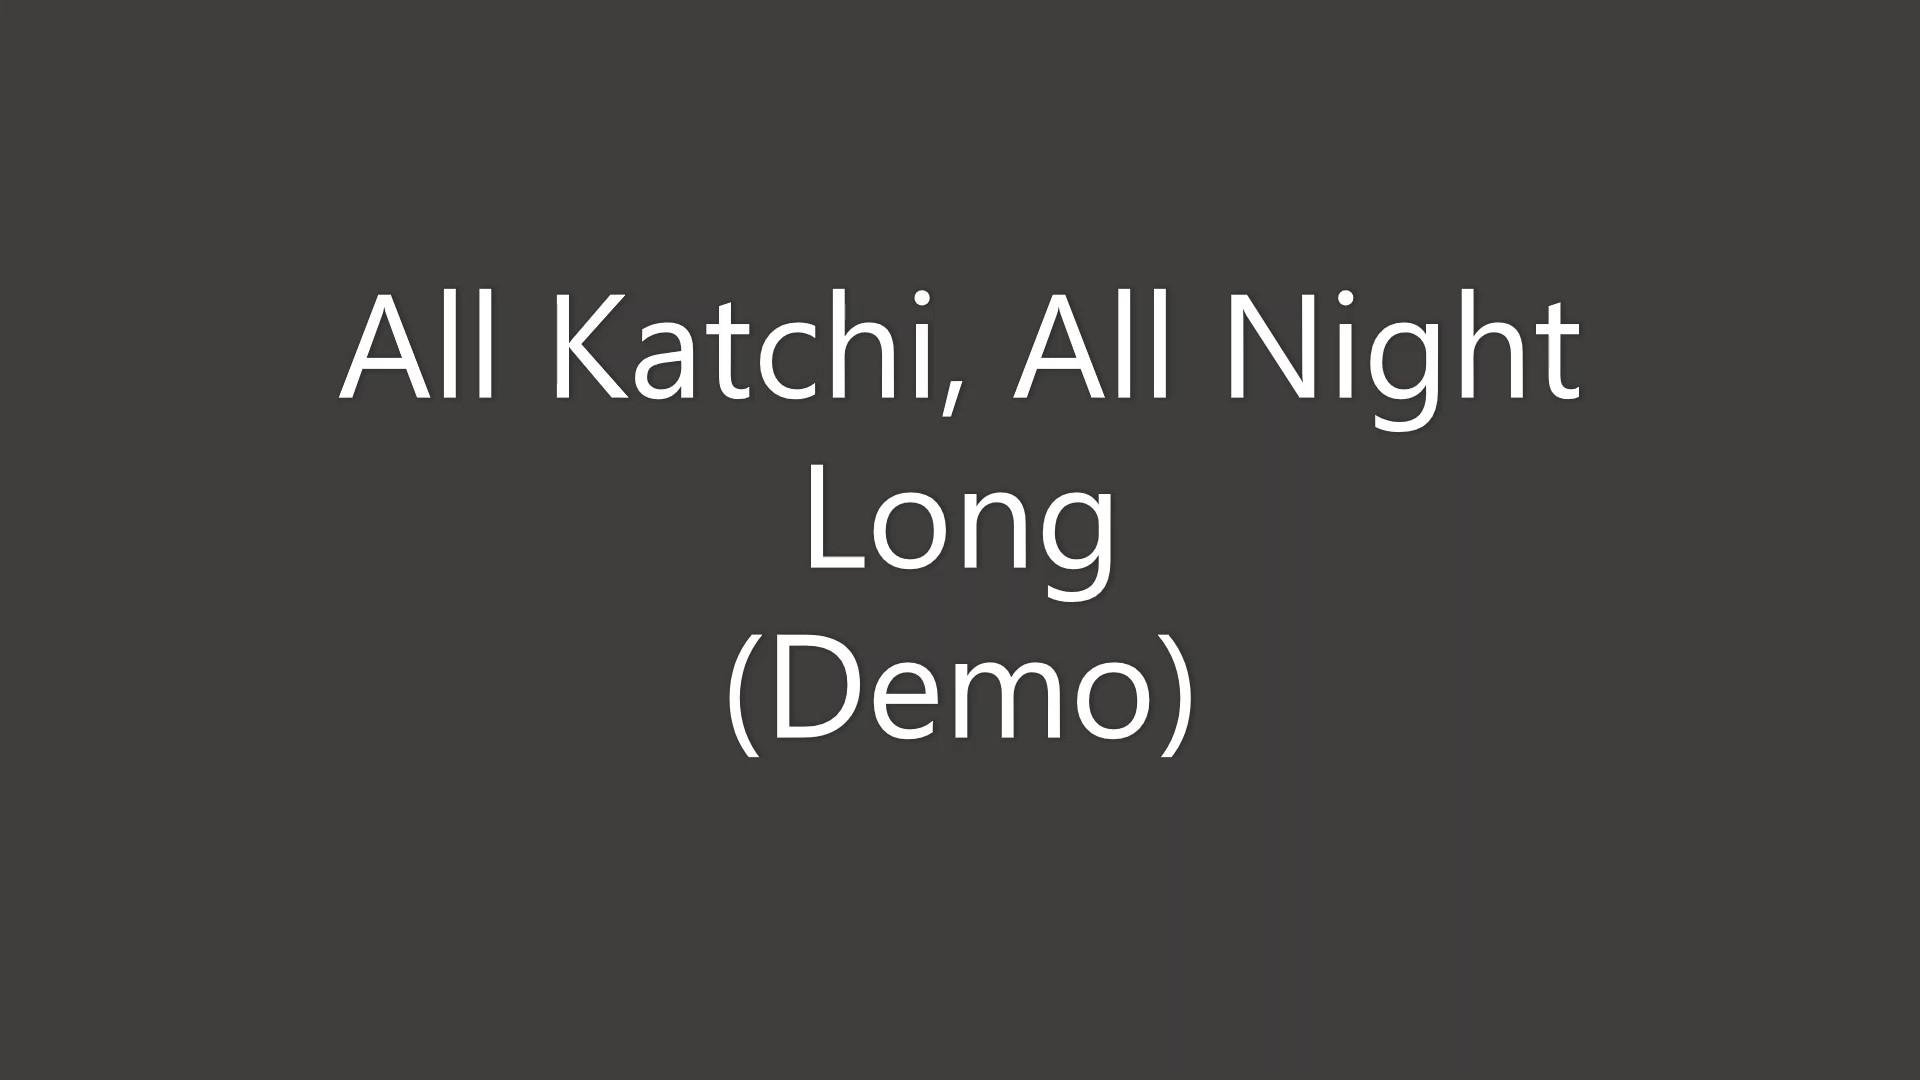 All Katchi, All Night Long Demo